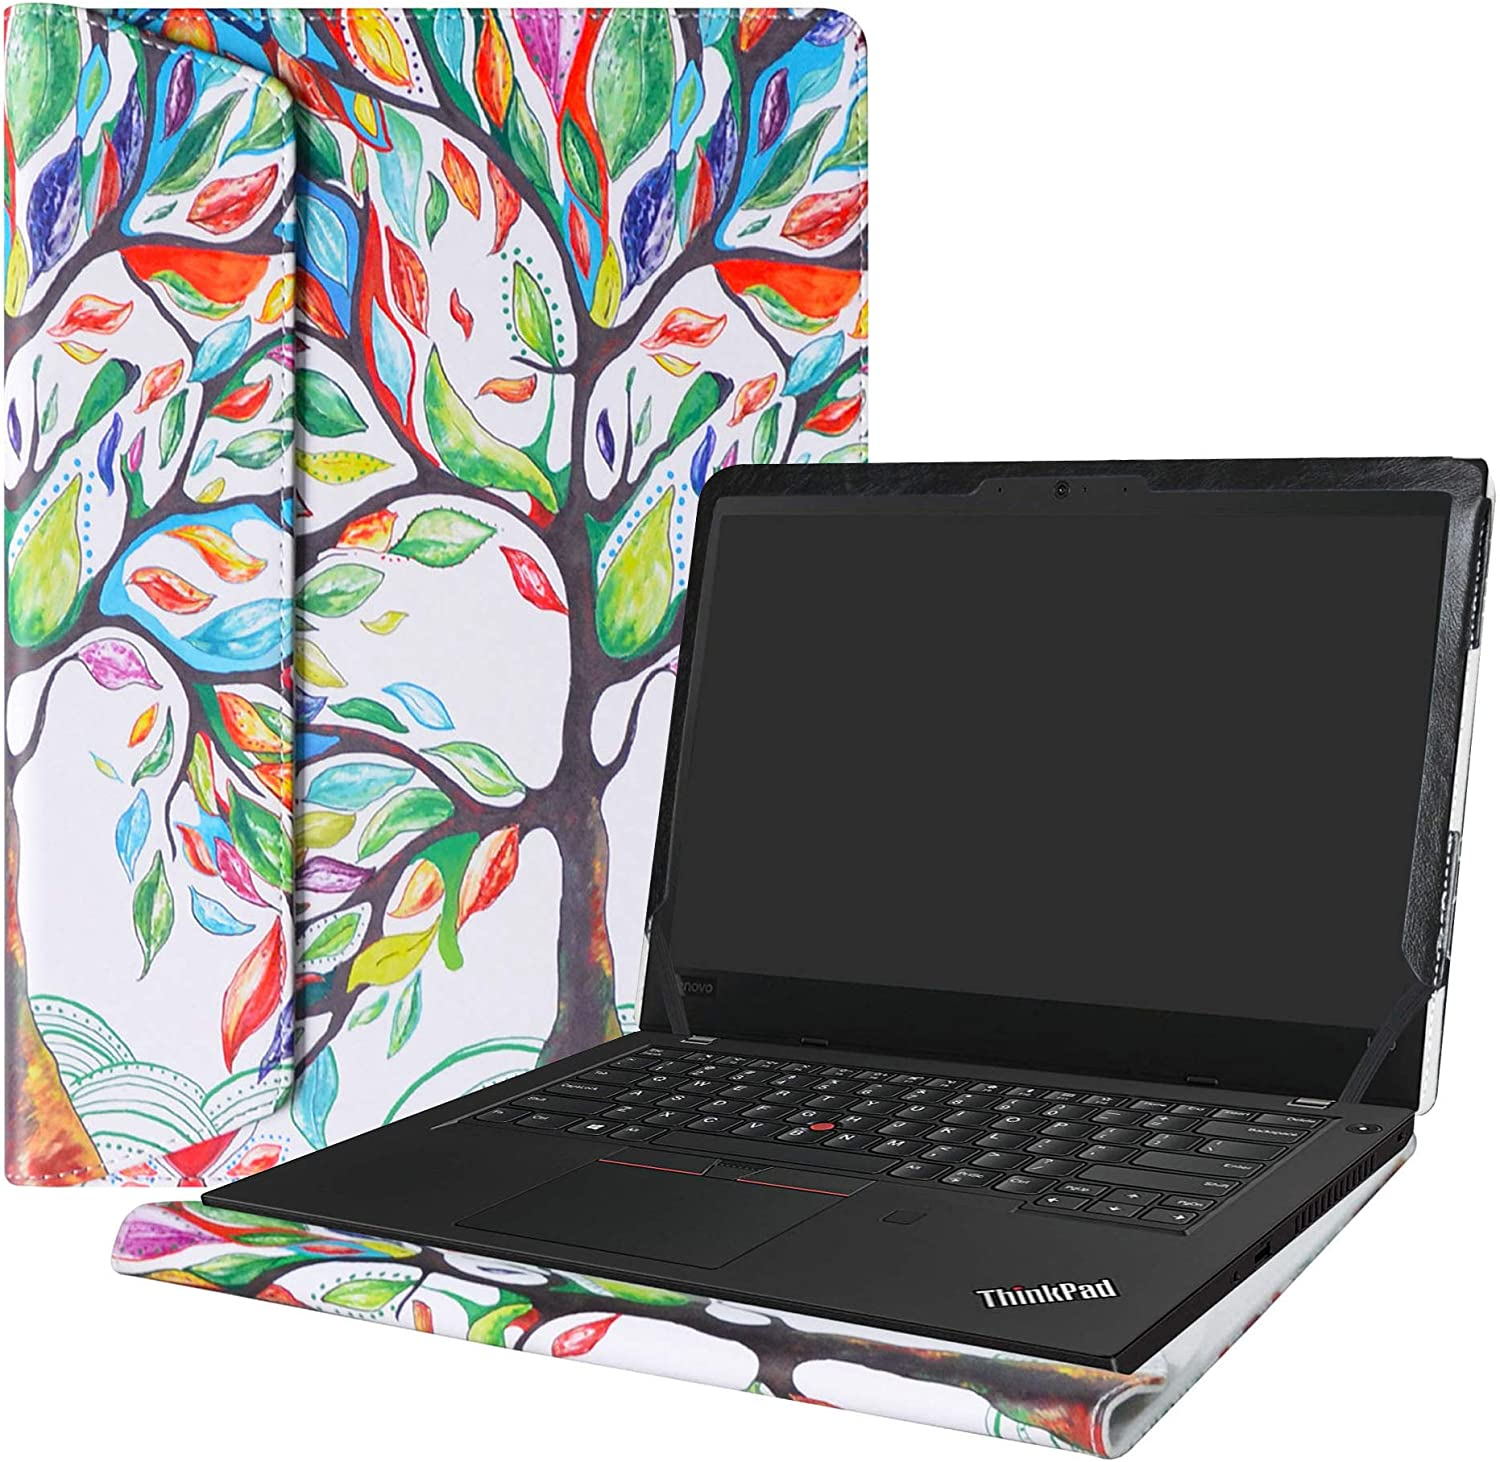 "Alapmk Protective Case Cover for 14"" Lenovo ThinkPad L480 L490 Series Laptop(Warning:Not fit thinkpad L470 L460 L450),Love Tree"